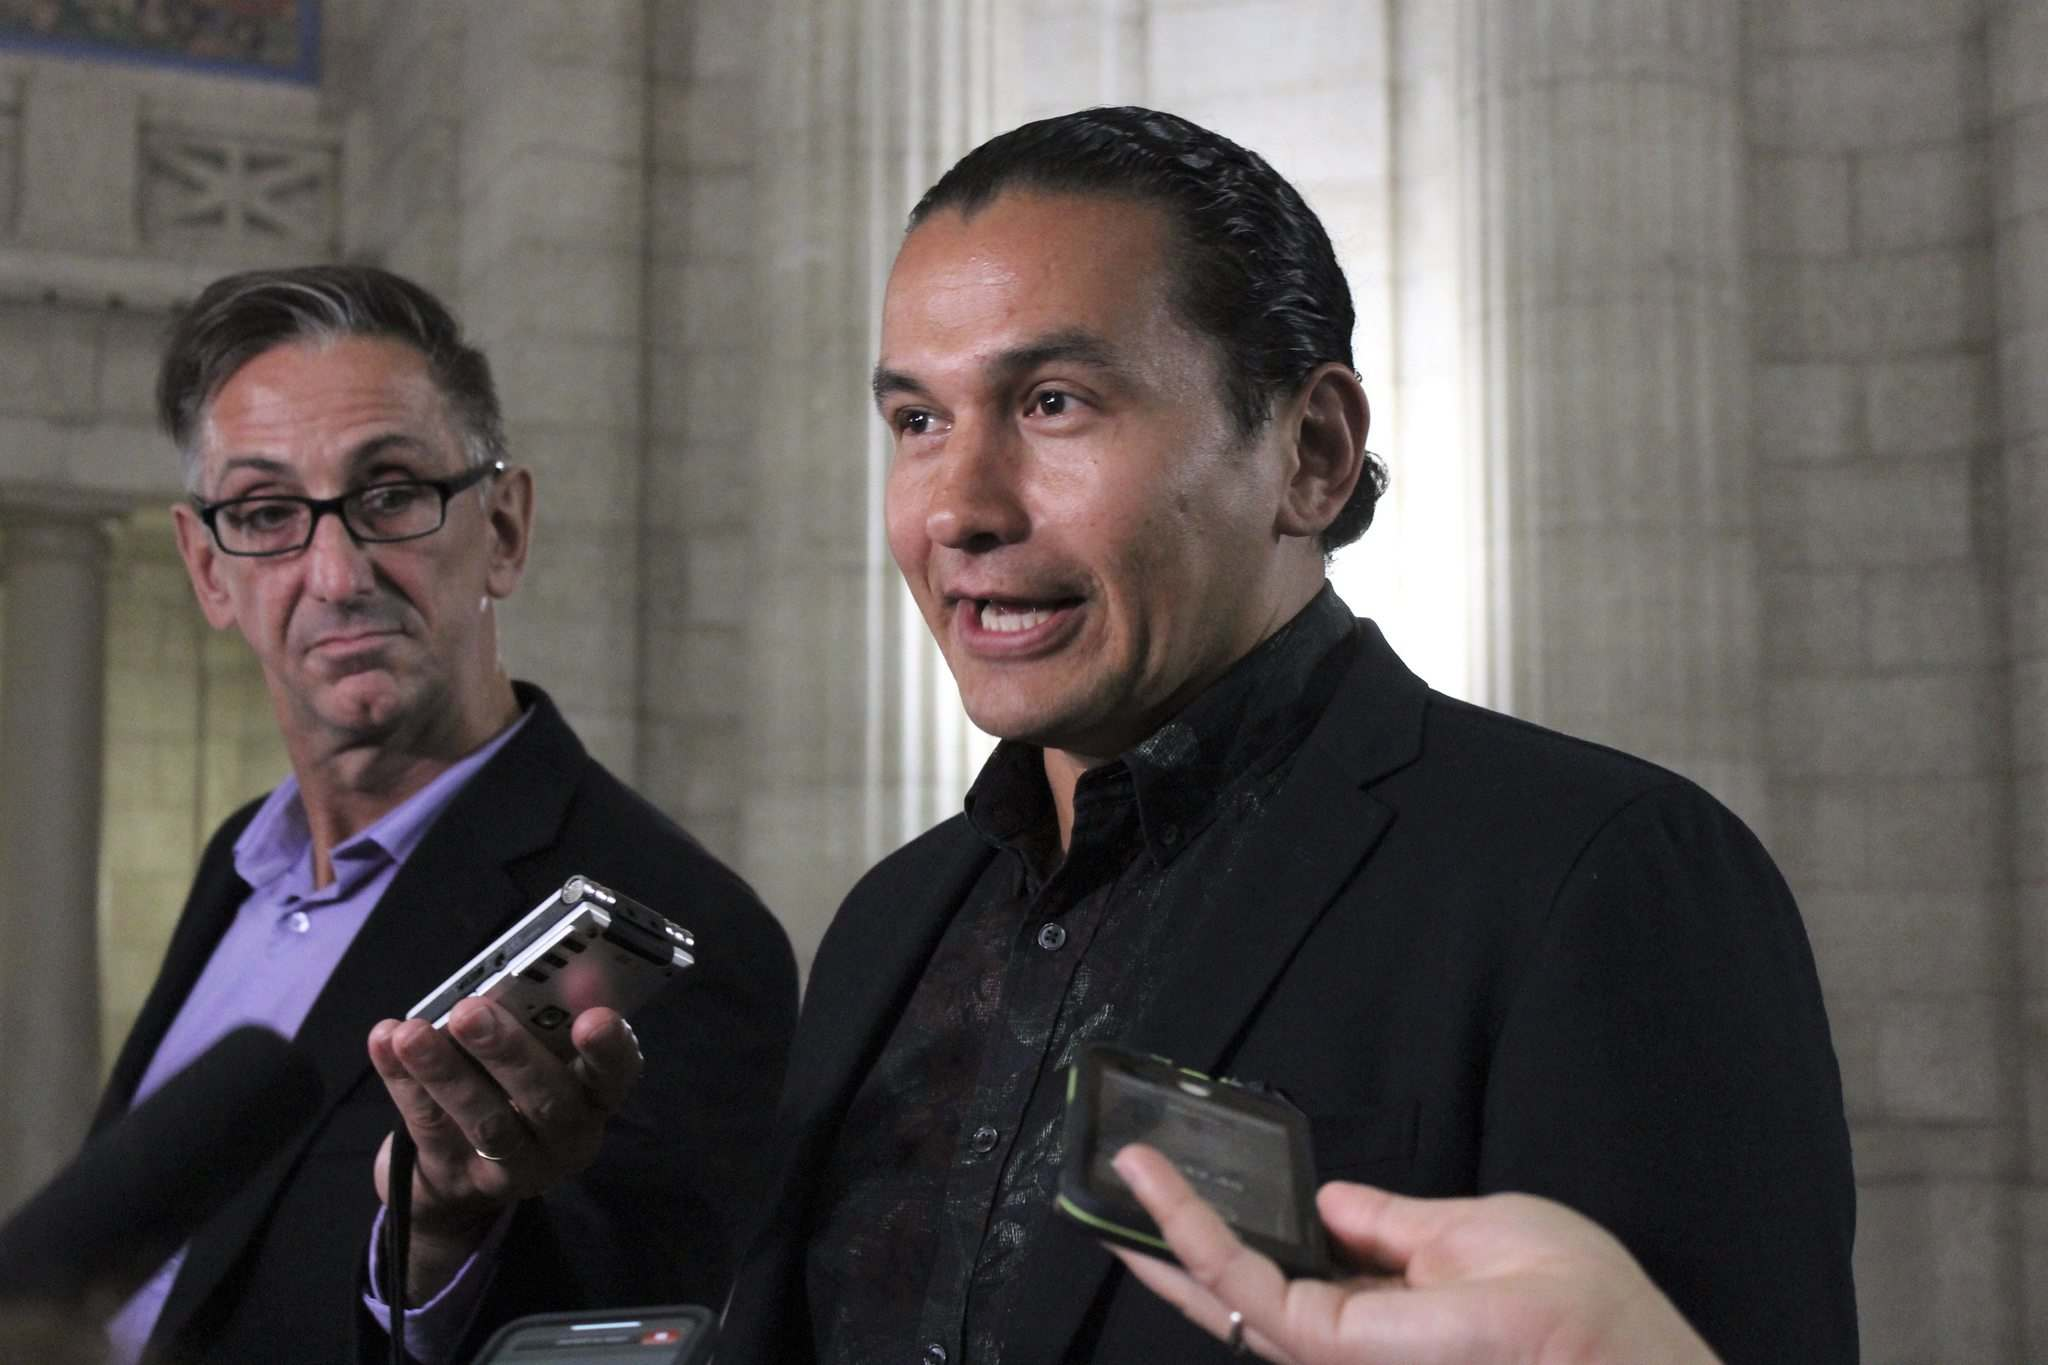 JESSICA BOTELHO-URBANSKI / WINNIPEG FREE PRESS</p><p>NDP Leader Wab Kinew says Manitoba's Conservative government is failing to limit the province's carbon footprint and address climate change.</p>